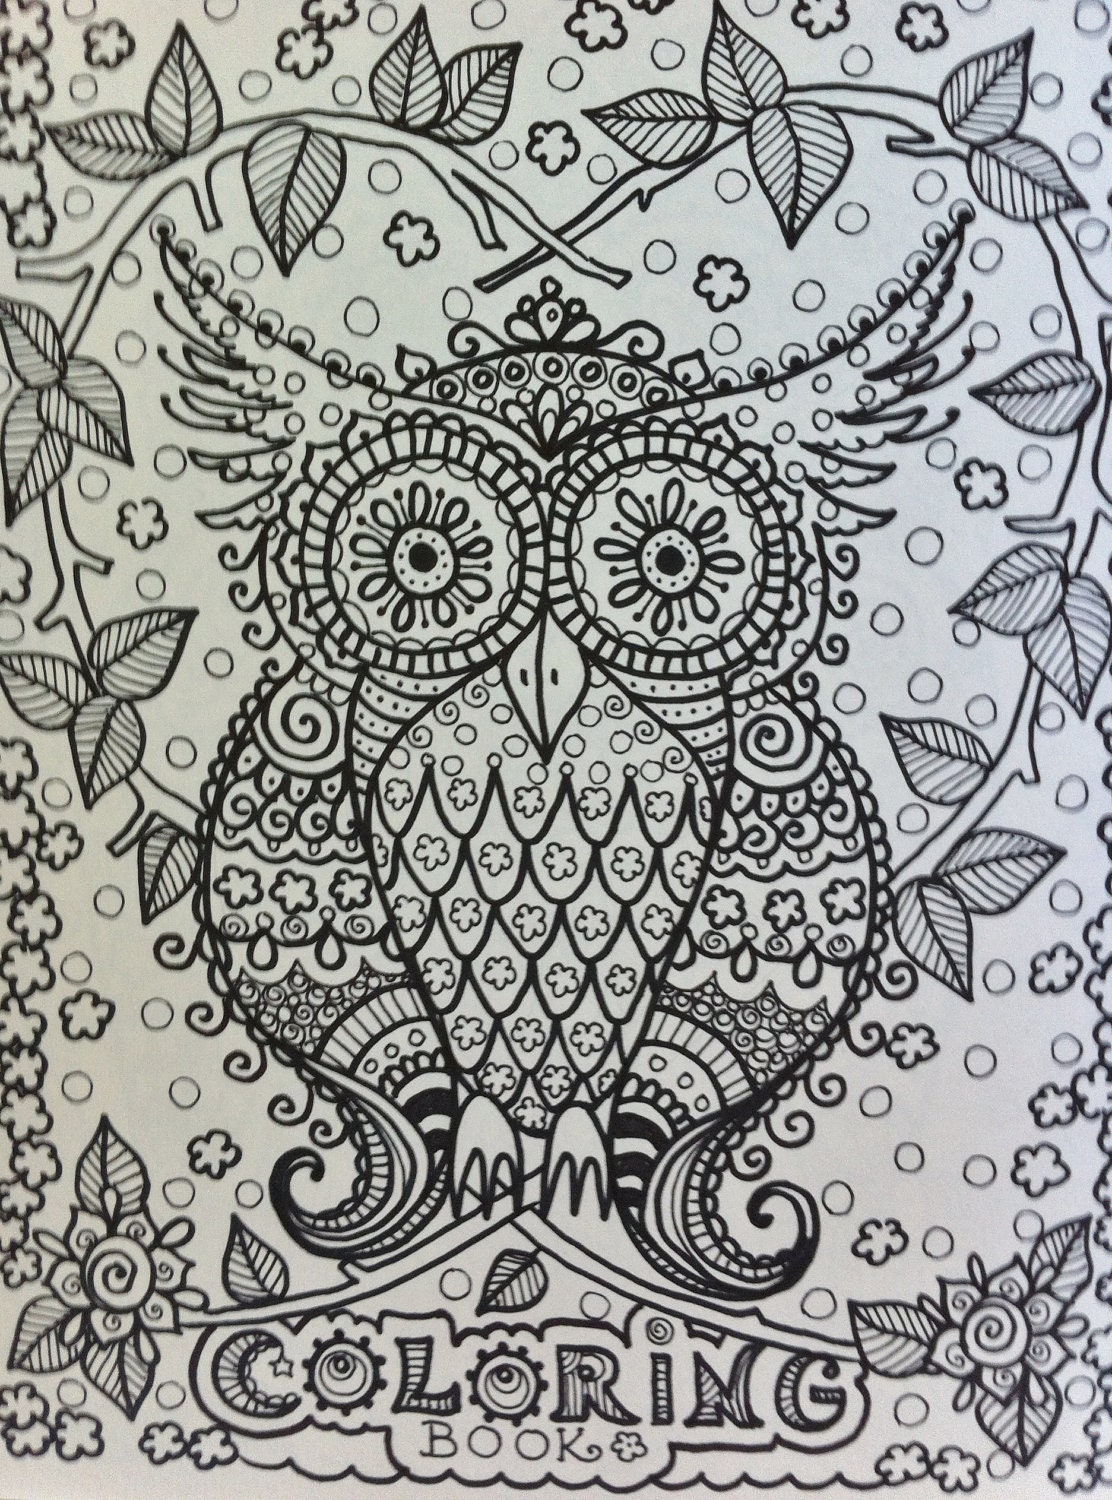 Owls Coloring Book For You To Have Some Fun And By Chubbymermaid